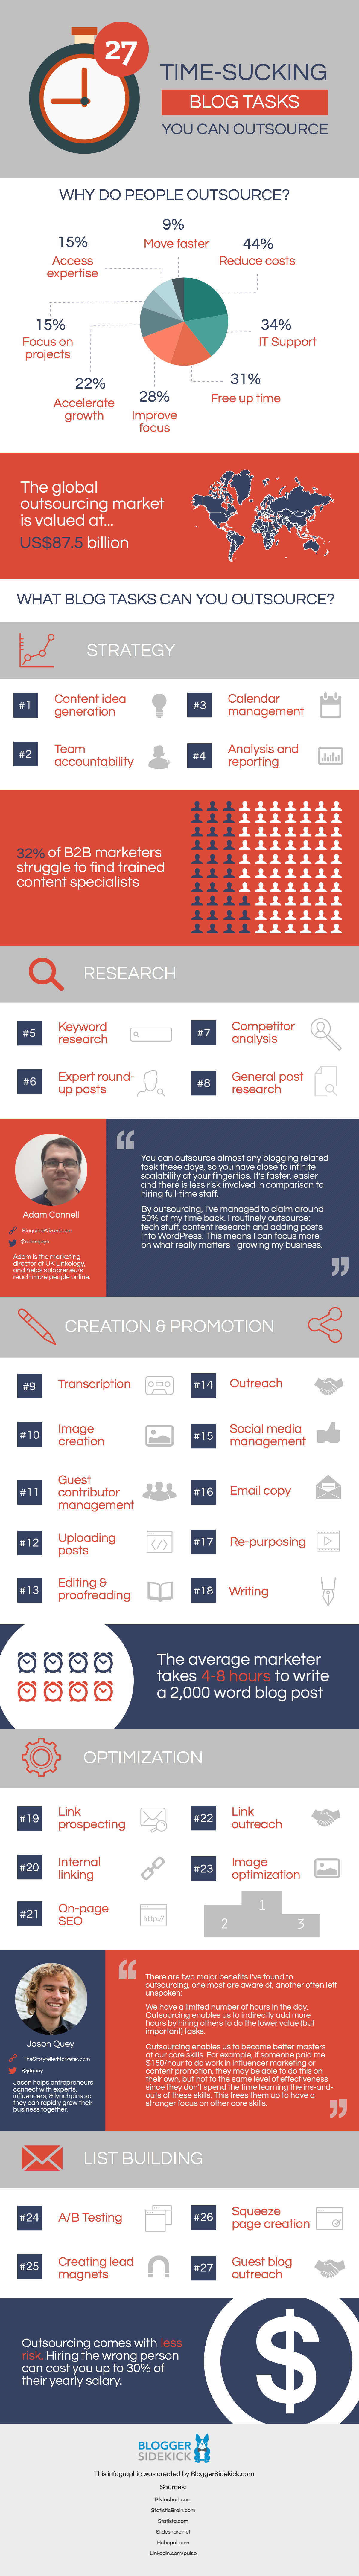 Blog Outsourcing Infographic